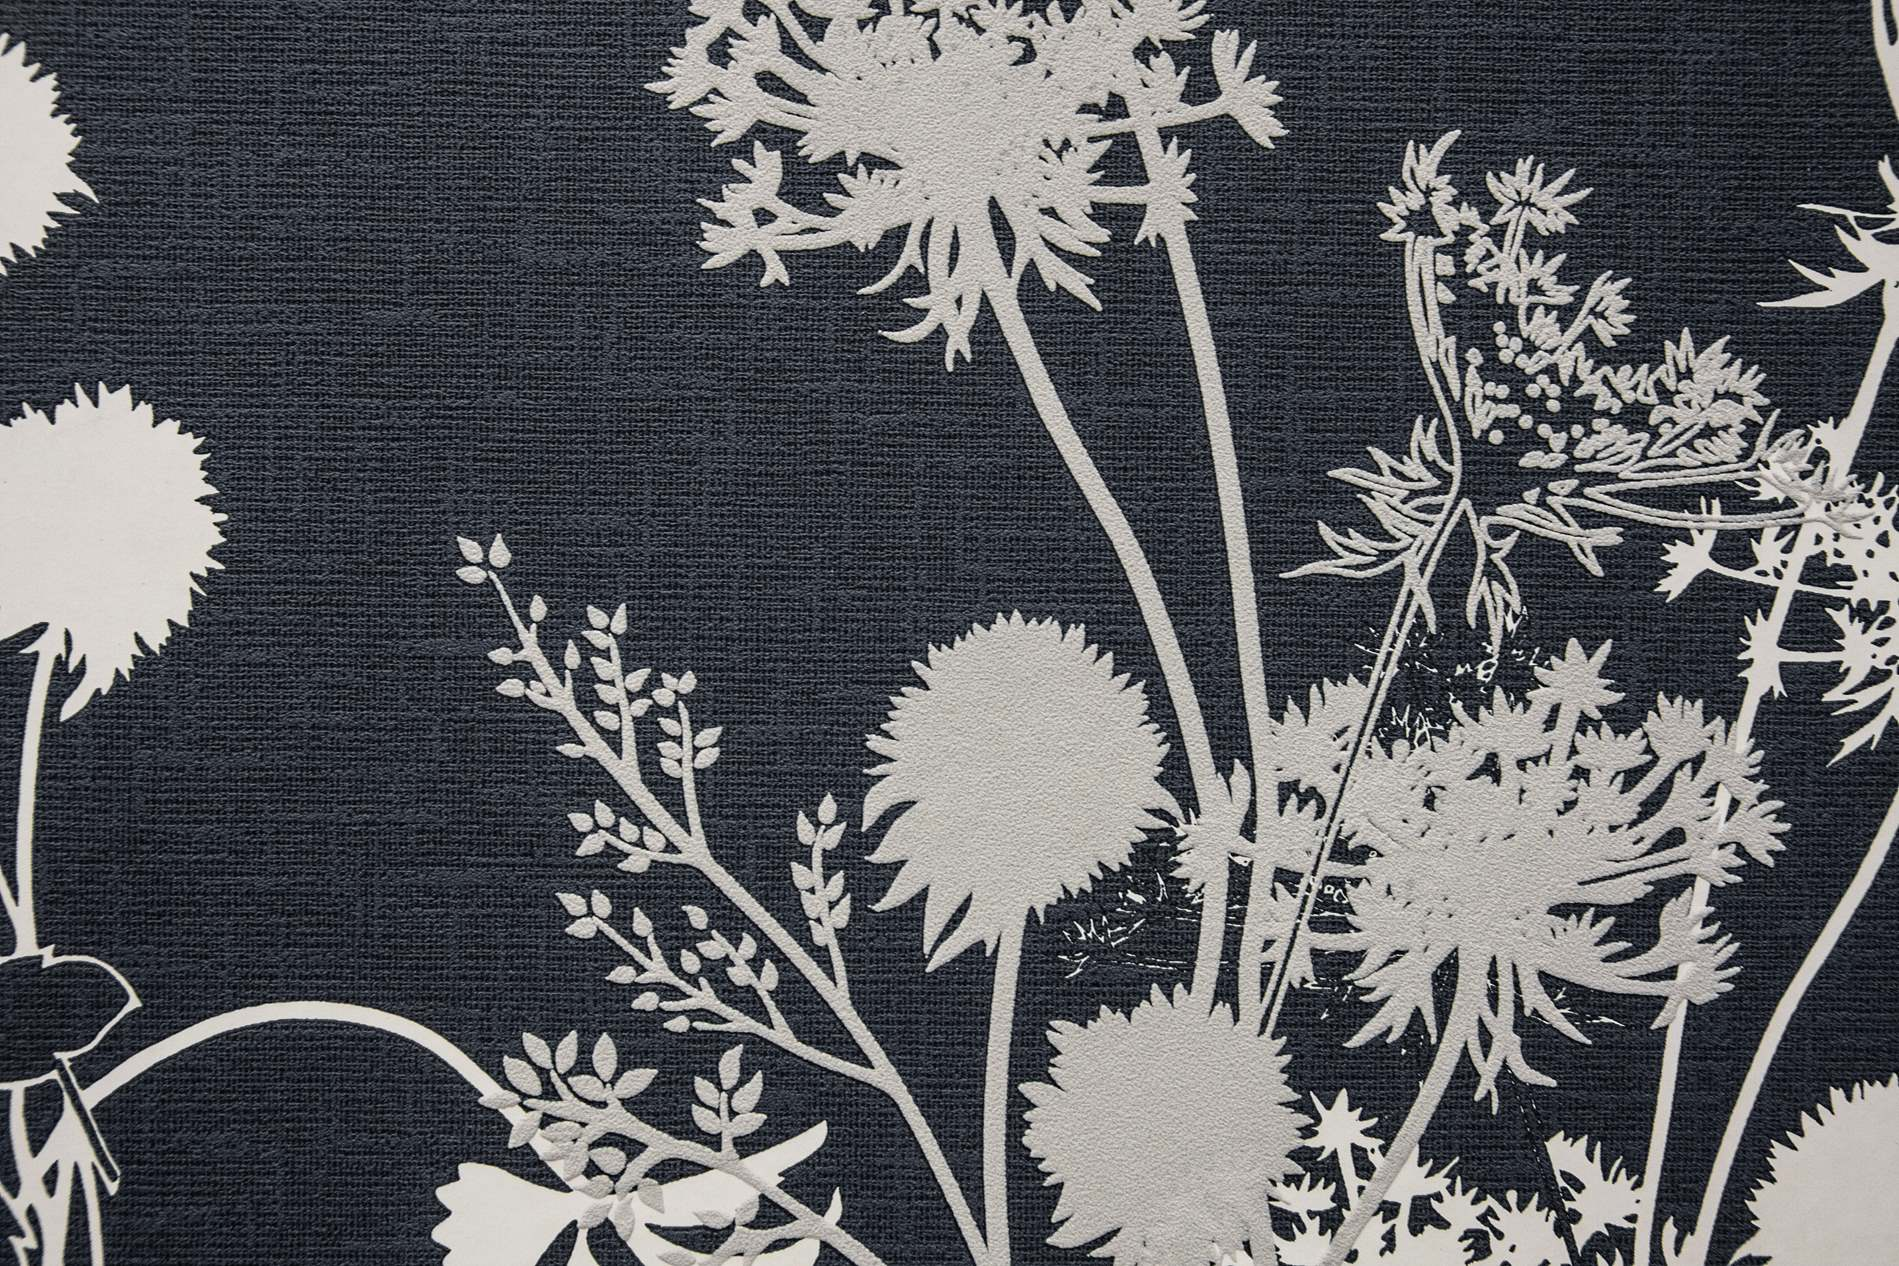 Orange And Blue Home Decor Grey Vintage Fabric Texture With Flower Design Photohdx